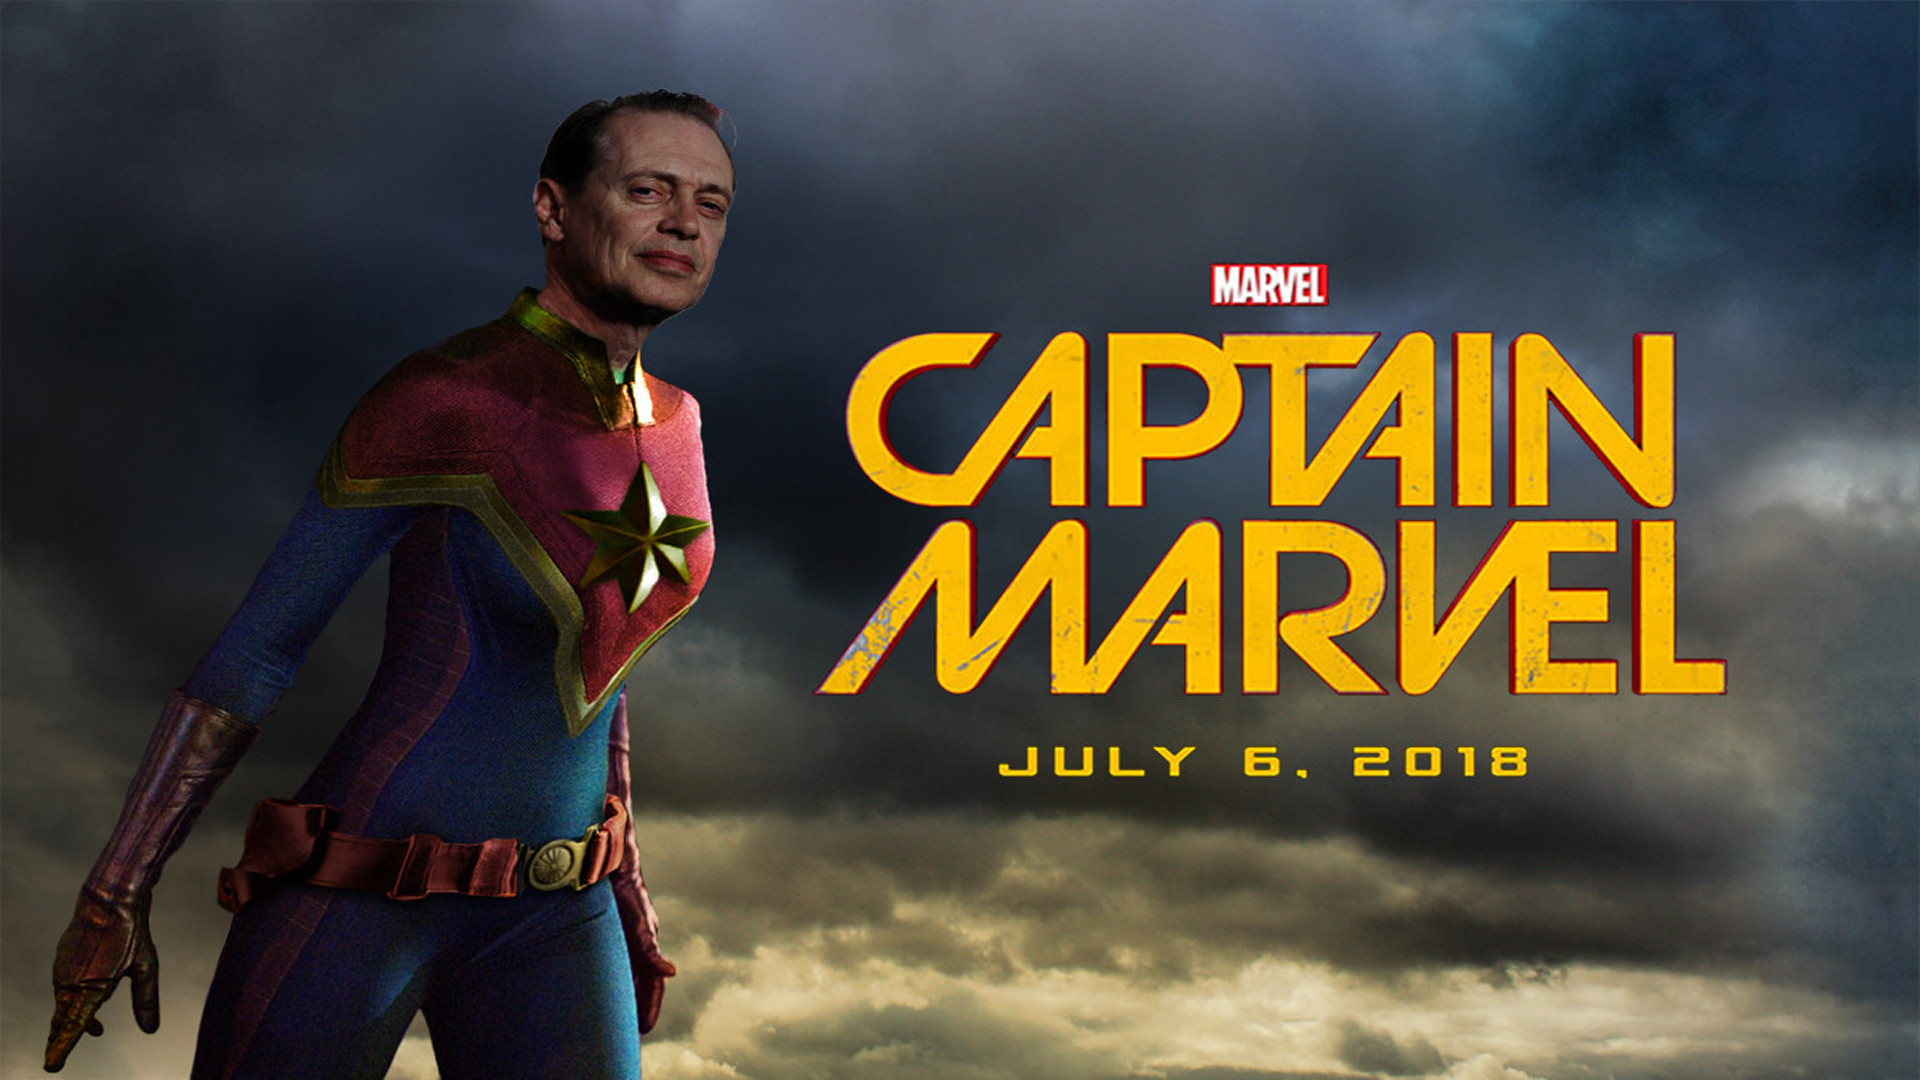 Steve Buscemi as Captain Marvel A collaboration with uredw04 1920x1080